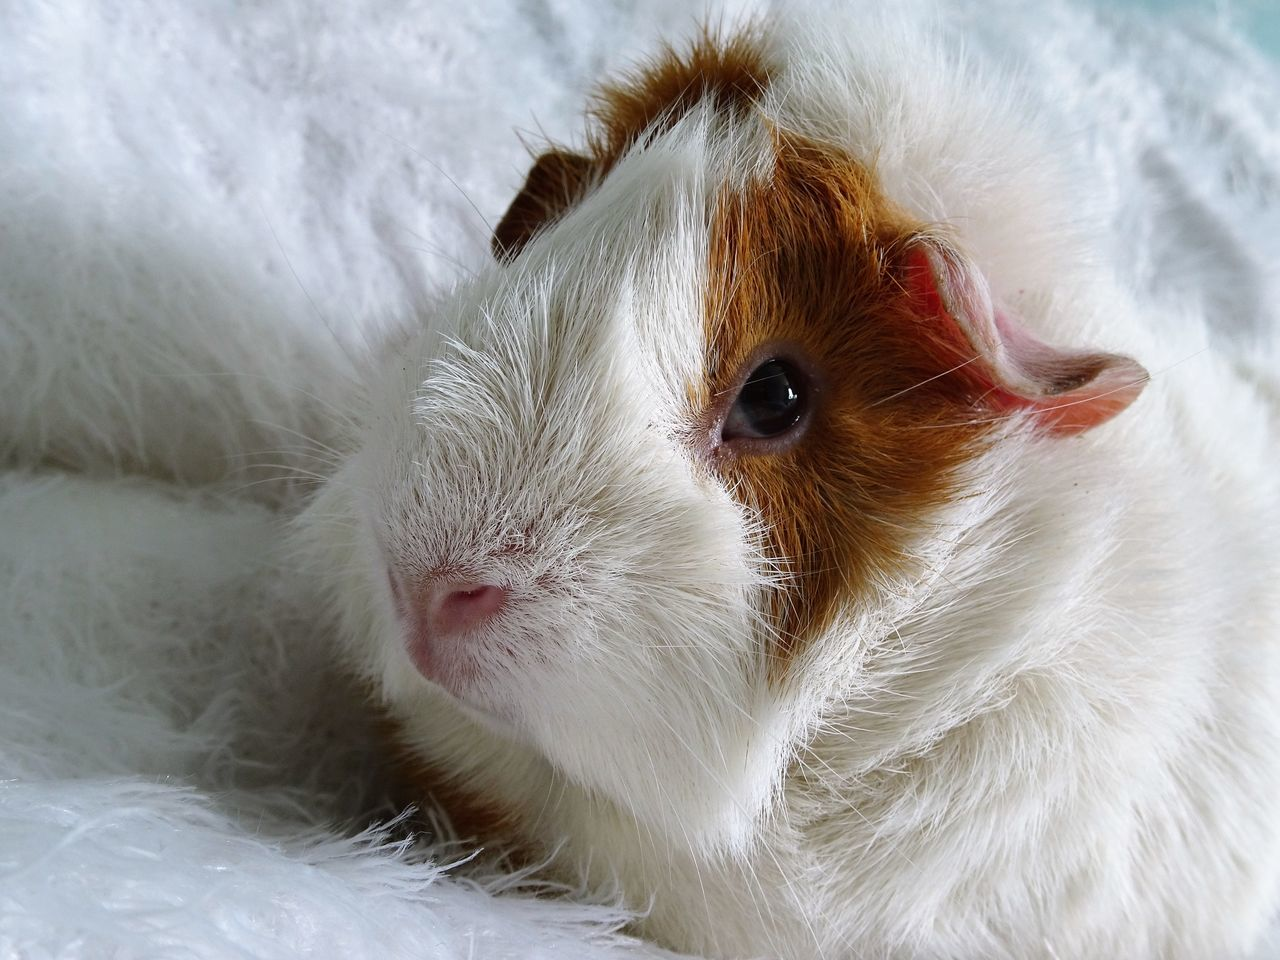 Beautiful stock photos of guinea-pigs, Rodent, animal Eye, animal Hair, animal Nose